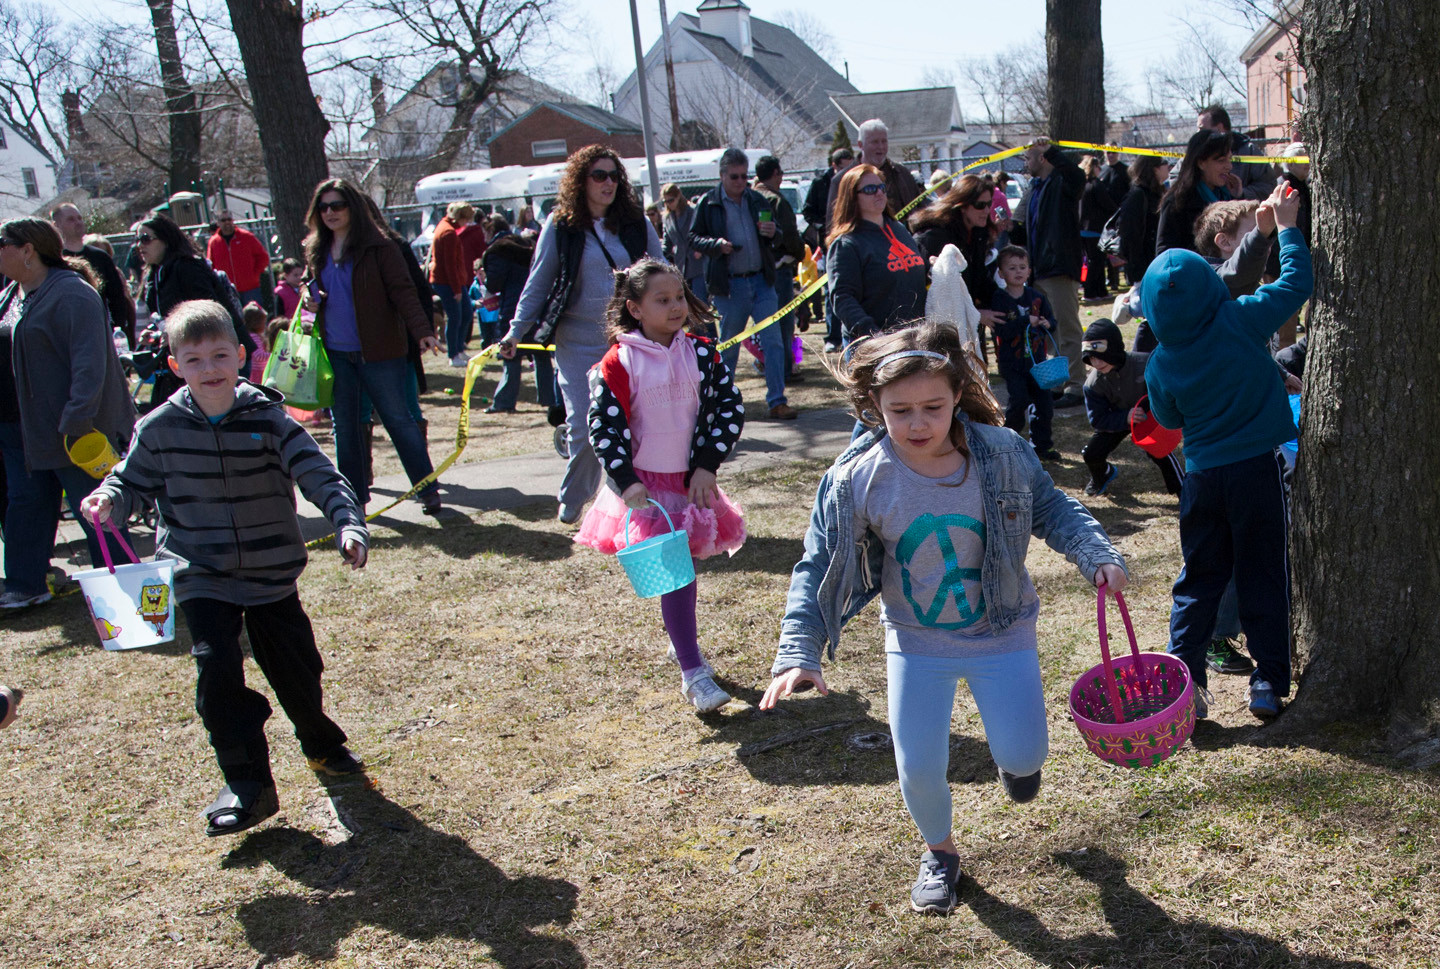 And they�re off! Children raced to pick up the colorful, scattered eggs.